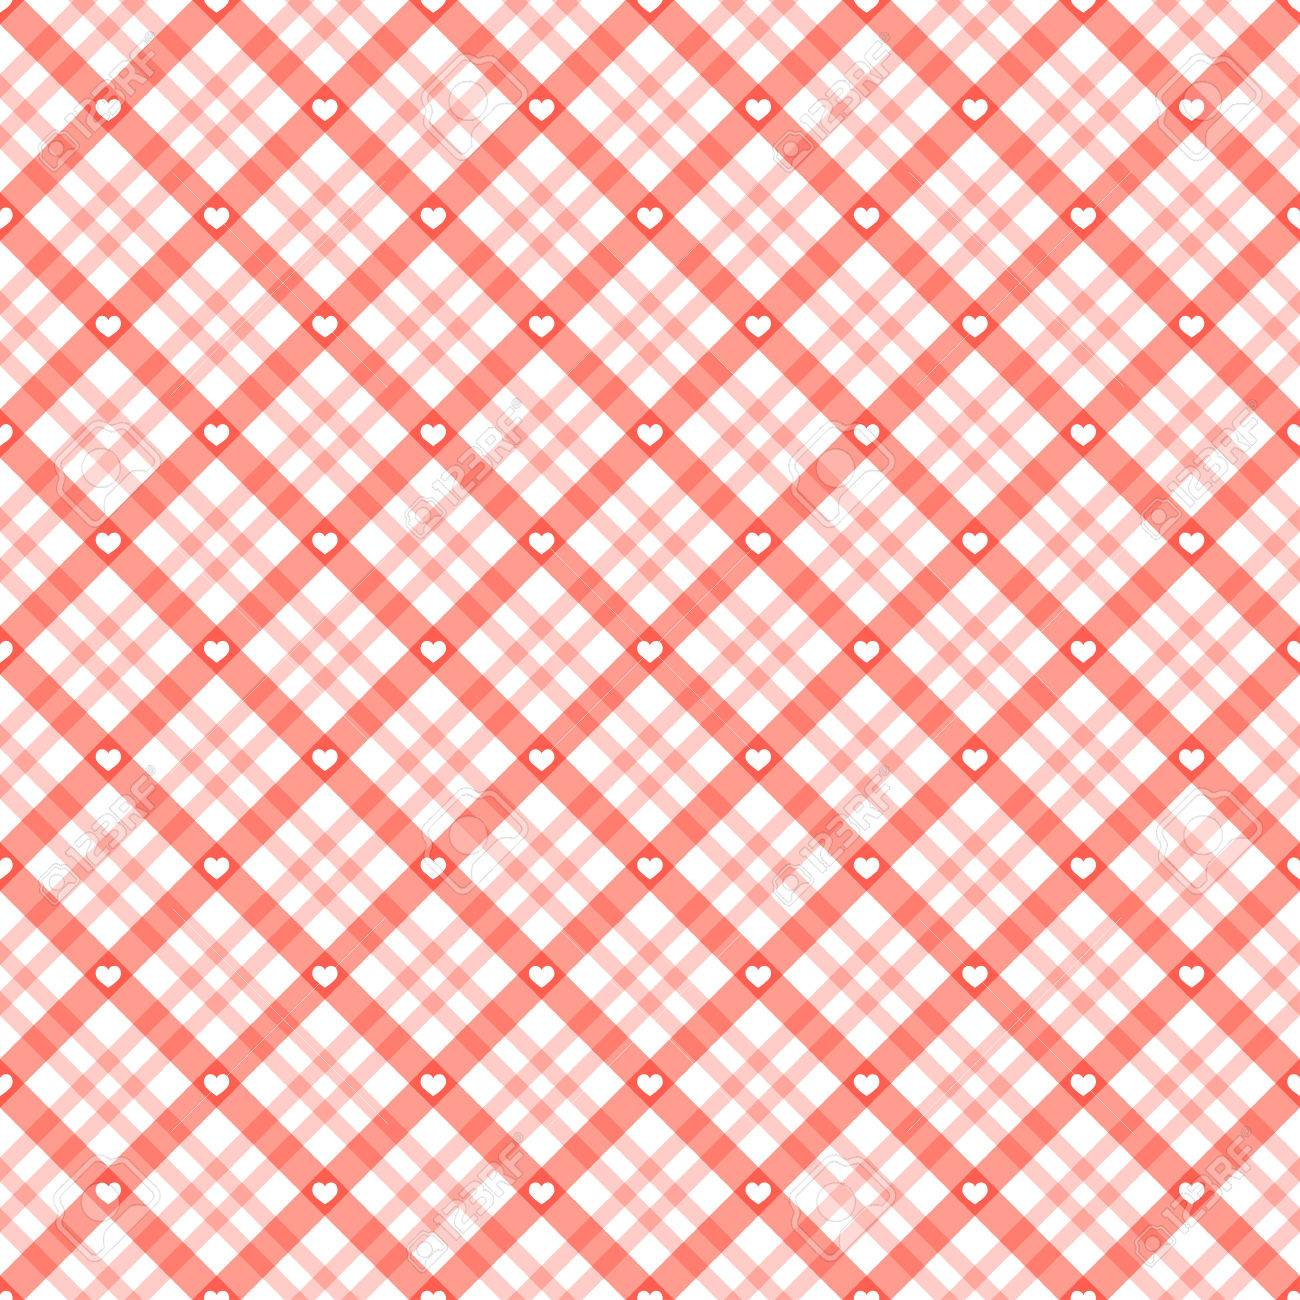 Red Checkered Table Cloth Background With White Hearts Stock Vector    55130877